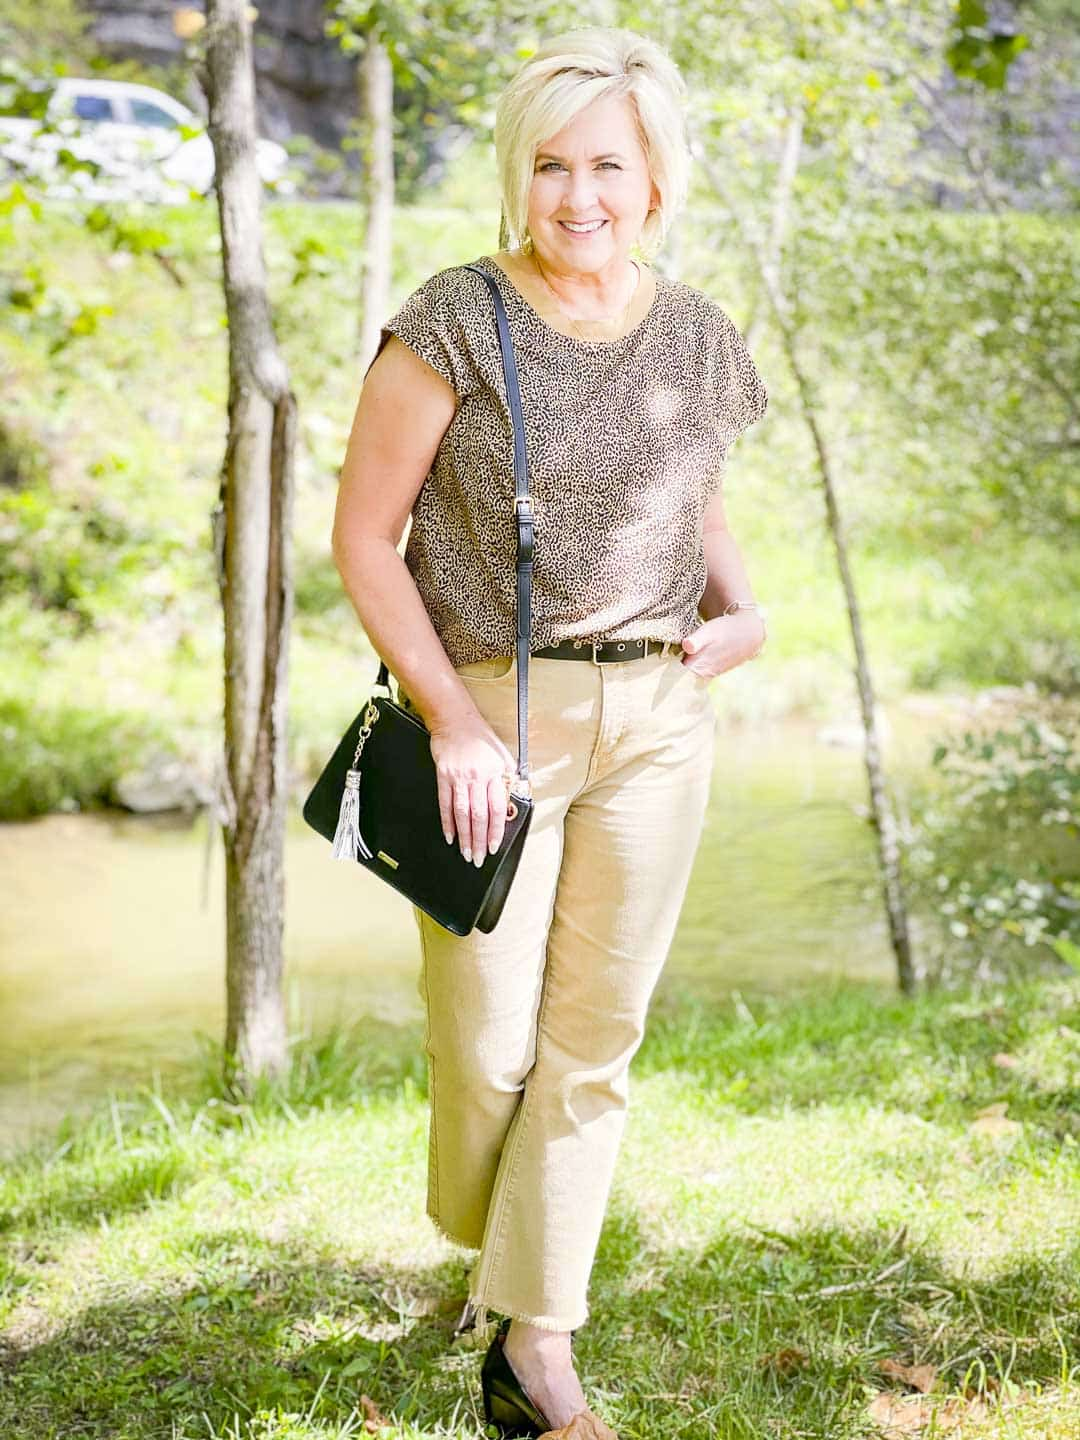 Over 40 Fashion Blogger, Tania Stephens is wearing animal print for fall, tan cropped jeans, and a black handbag